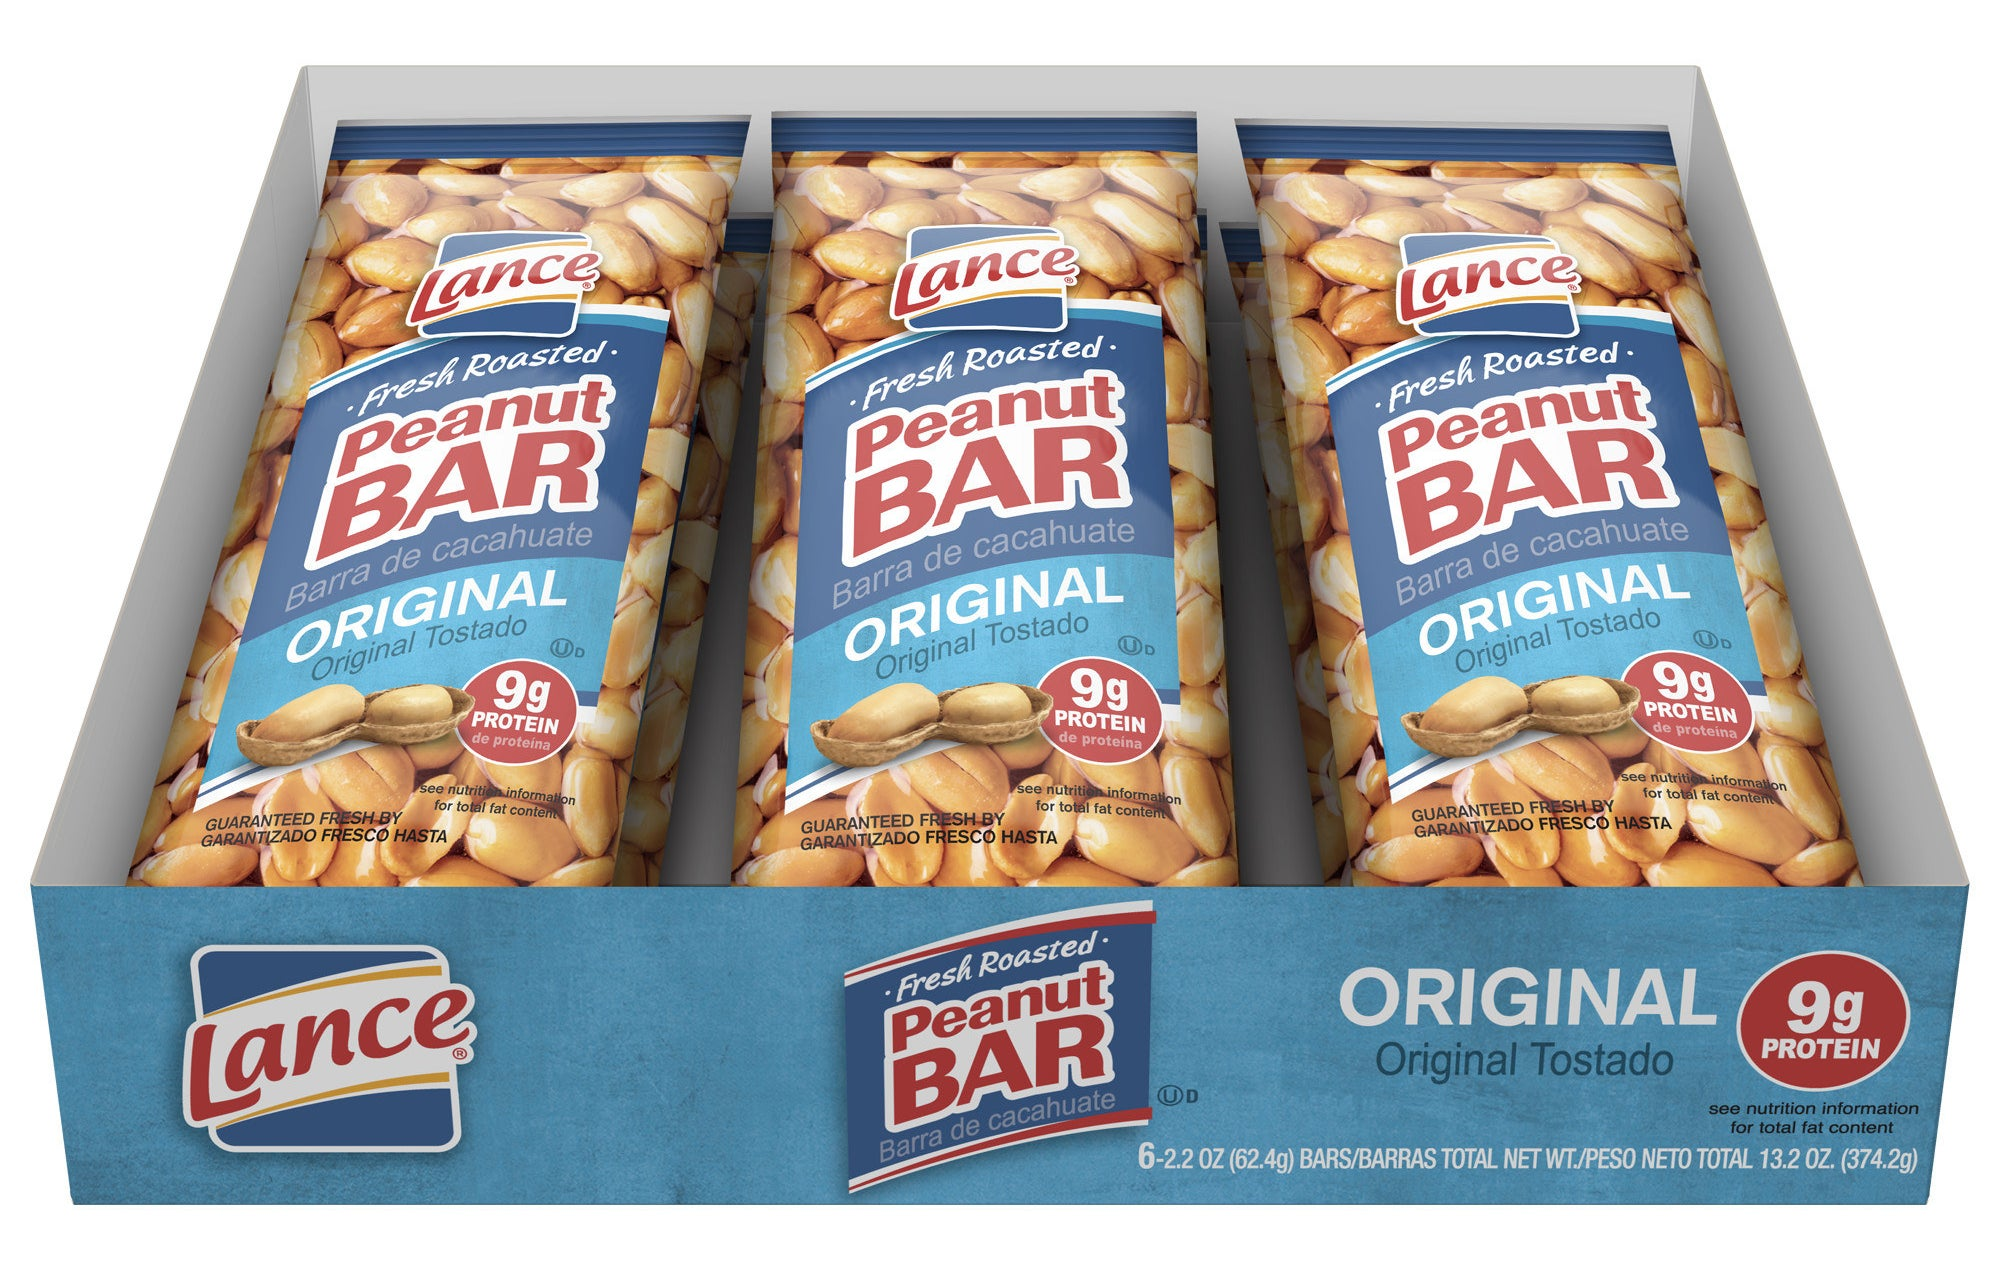 the bars in a tray